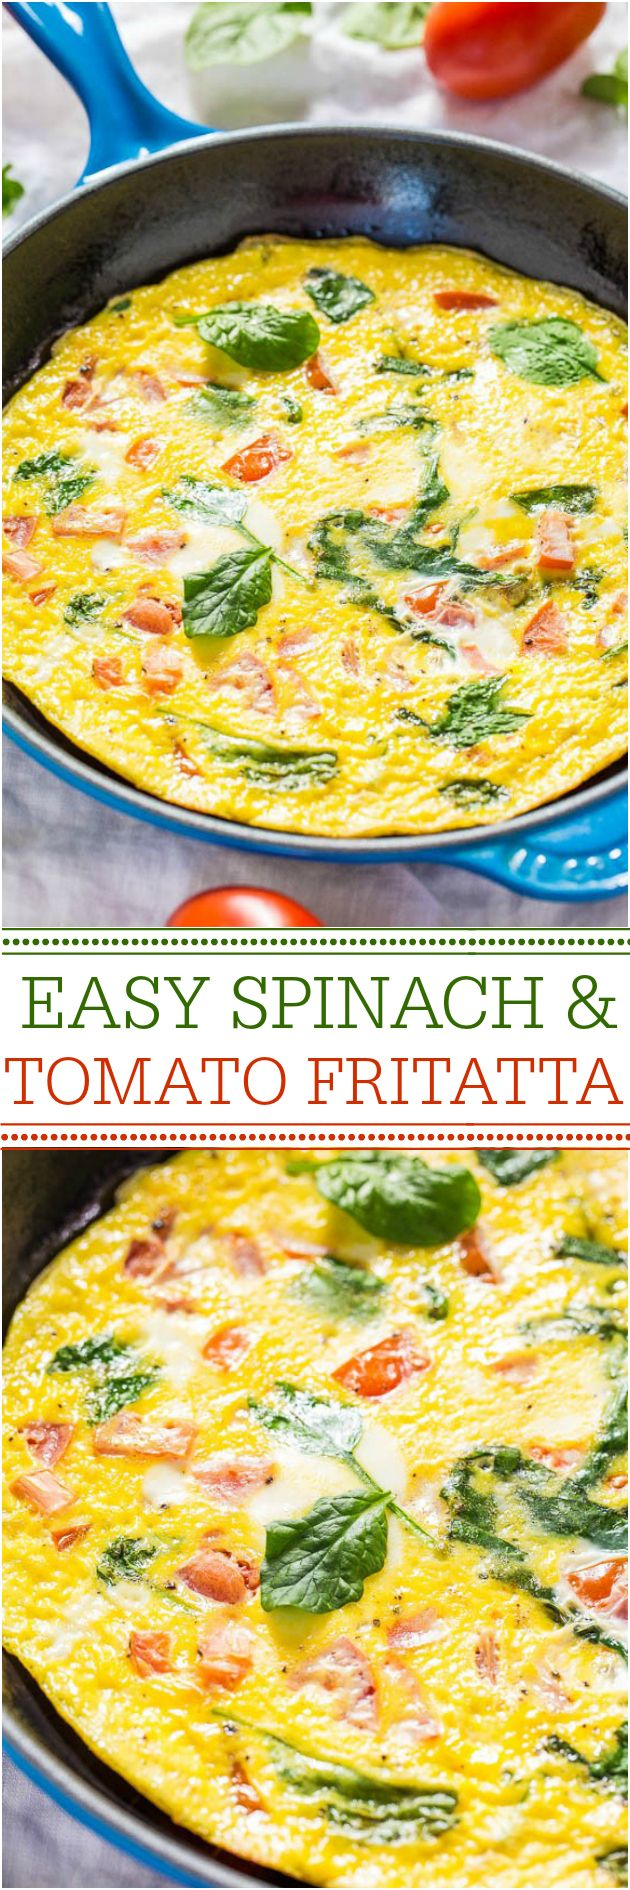 Easy Spinach and Tomato Frittata - Ready in 10 minutes and healthy! Perfect for any meal!! Great for #FathersDay brunch (and using up summer garden tomatoes!)